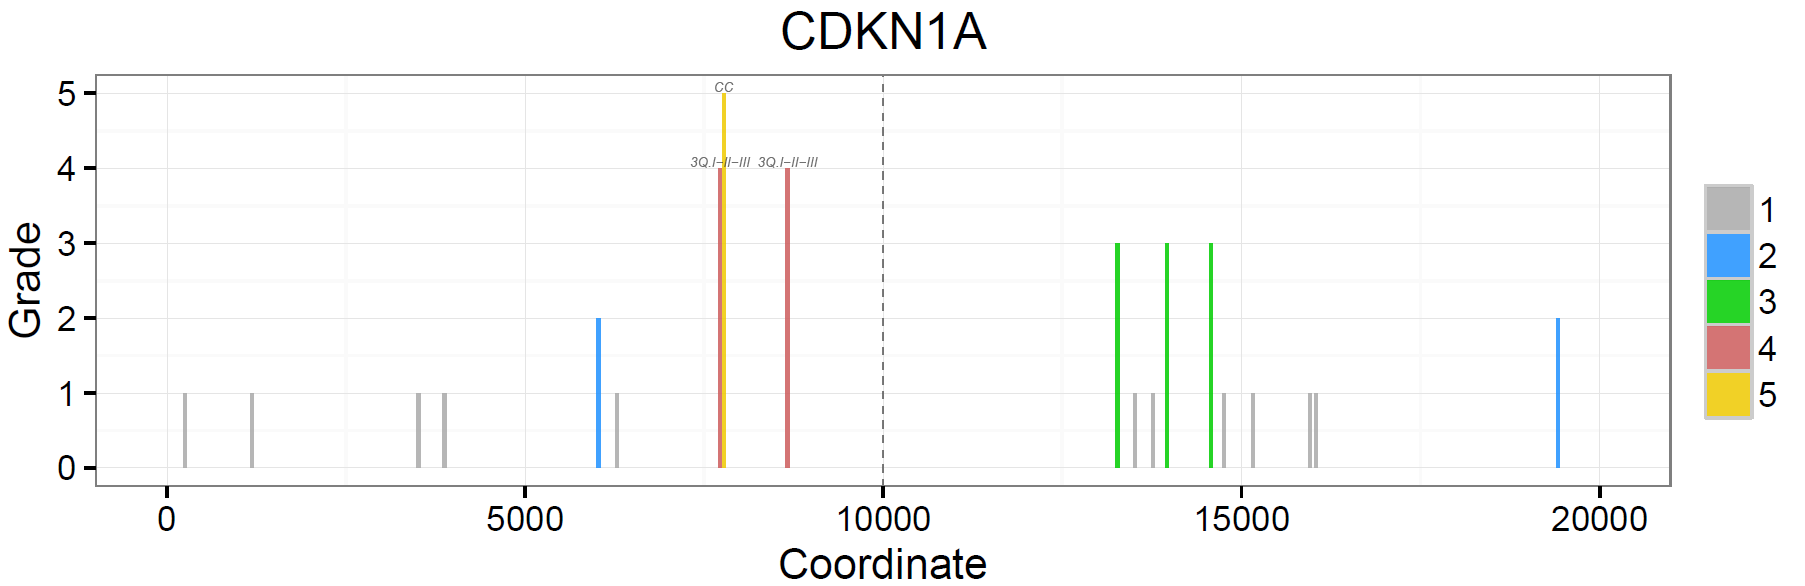 p53 REs identified in the promoter of CDKN1A